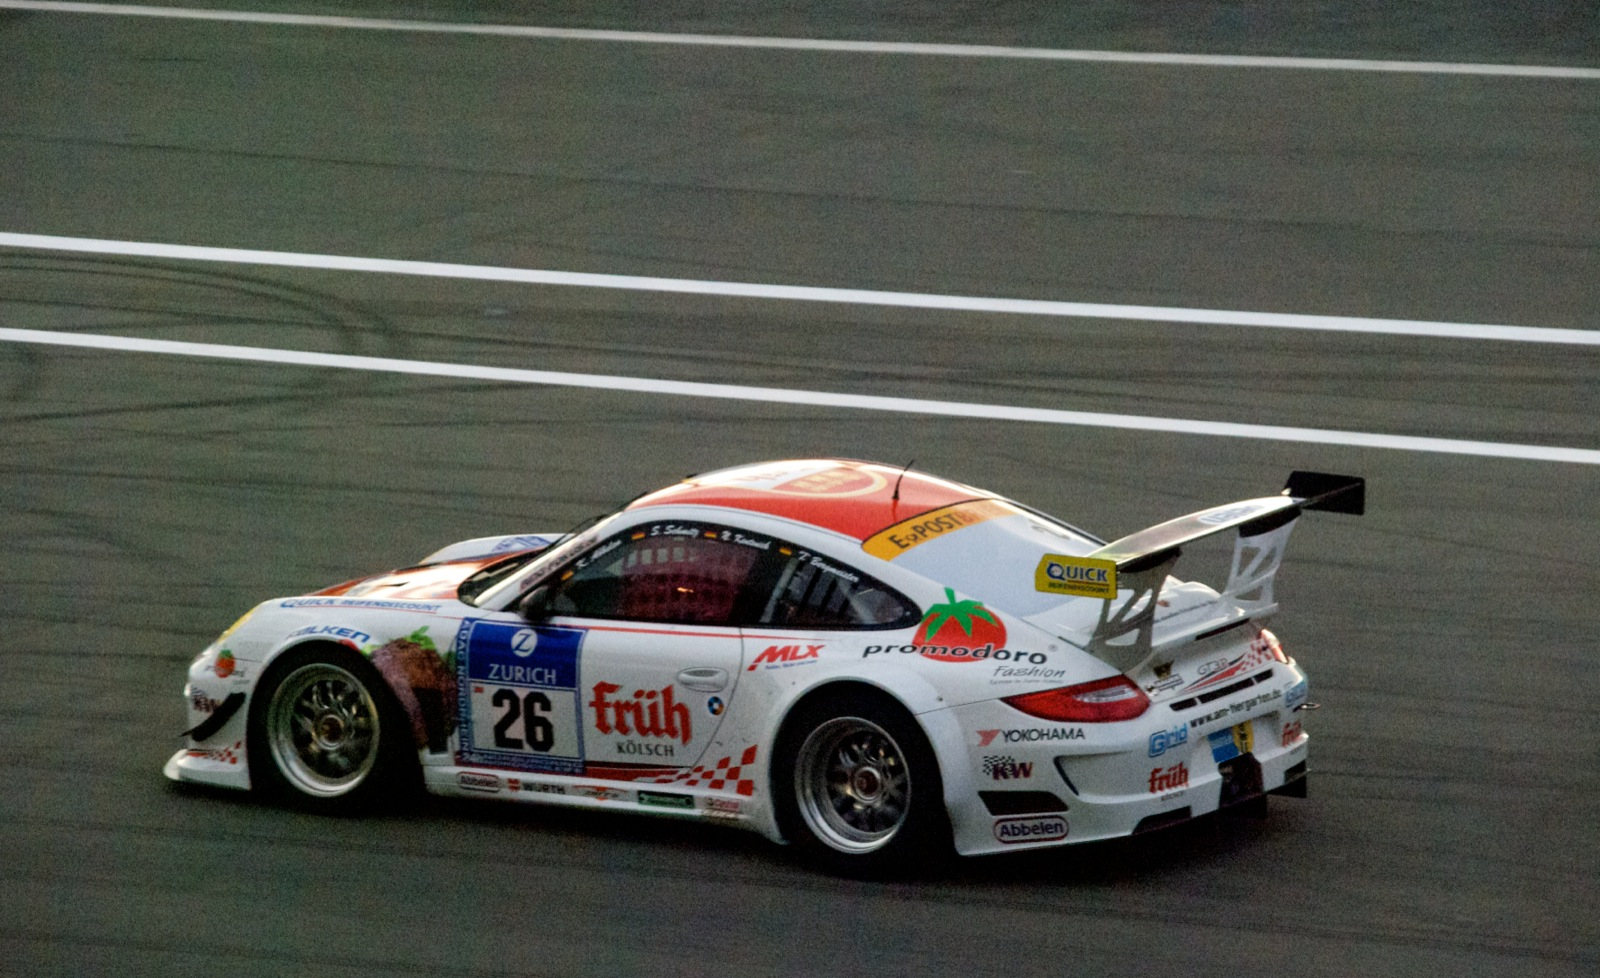 24h Nürburgring 2011 – Qualifying IV